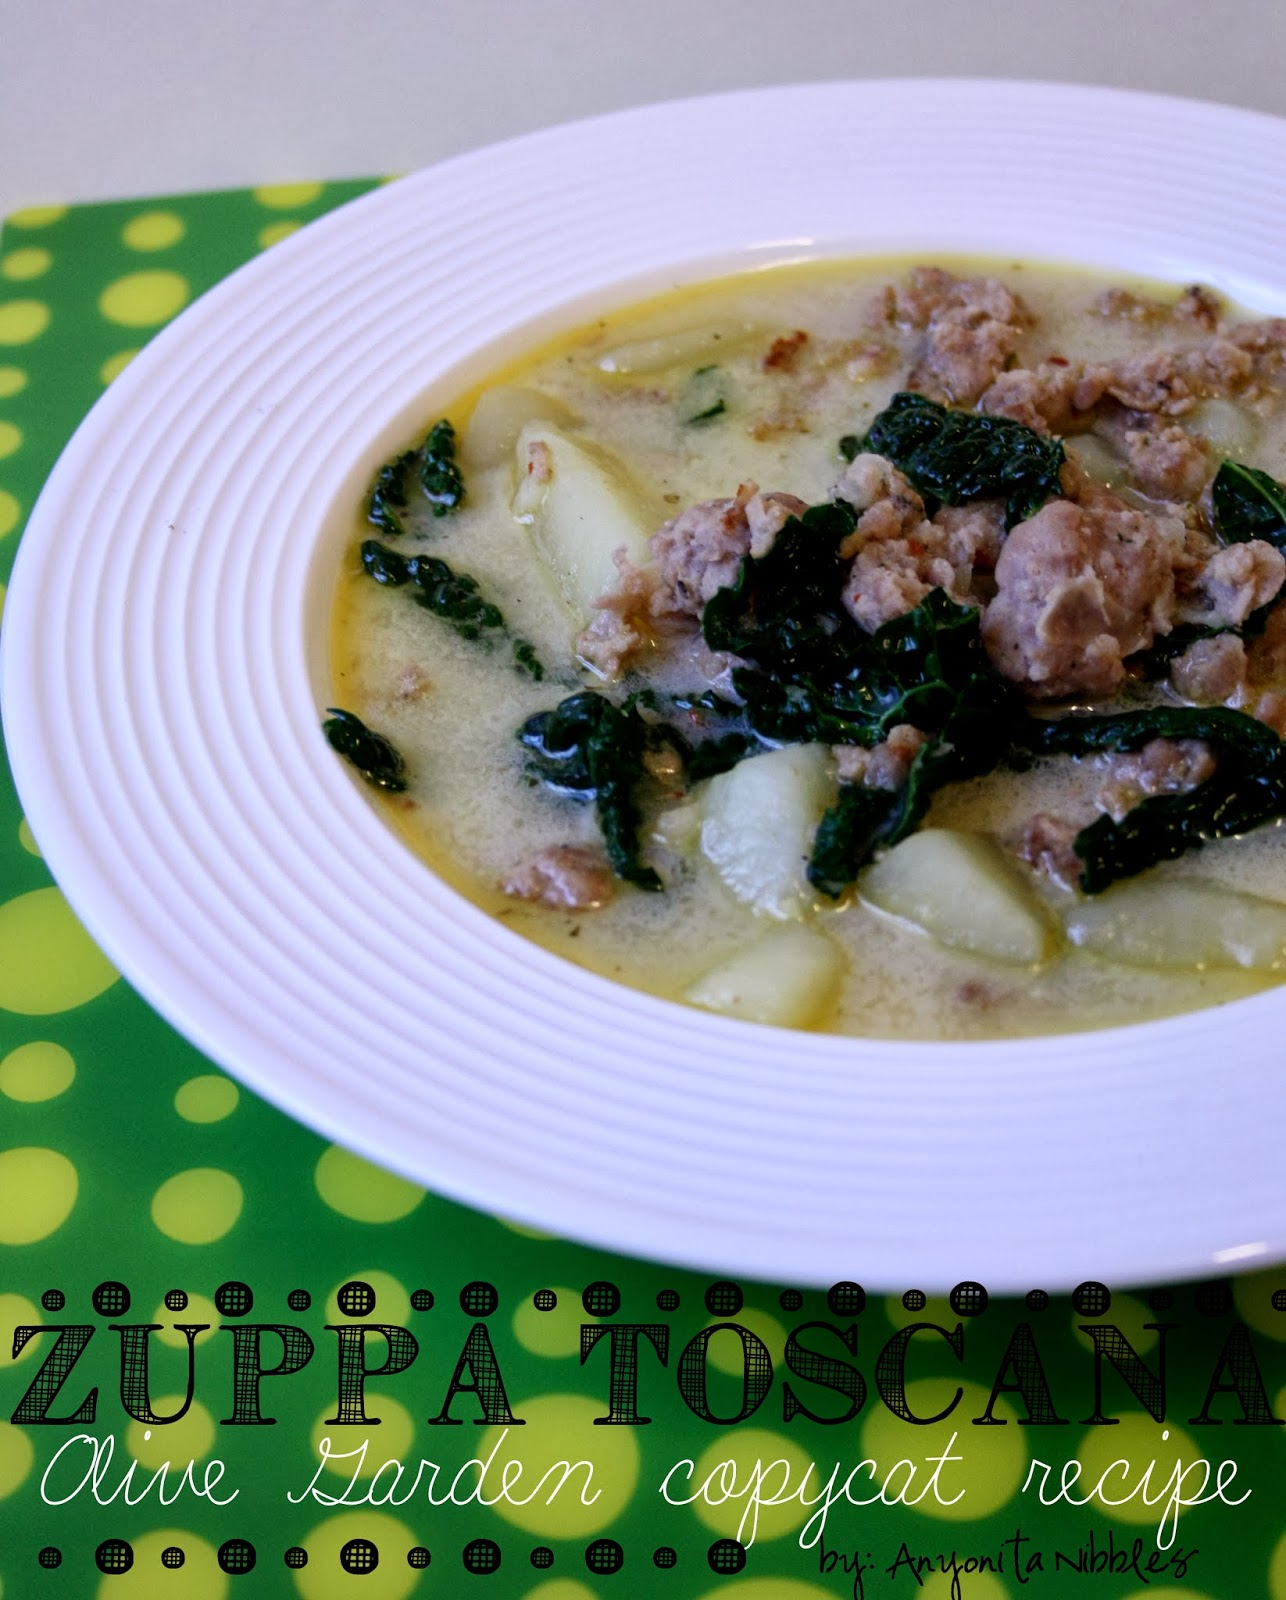 This Zuppa Toscana tastes just like the Olive Garden recipe and is inspired by that dish. It's made with cavolo nero, or black kale, which has an earthy and intense flavor.